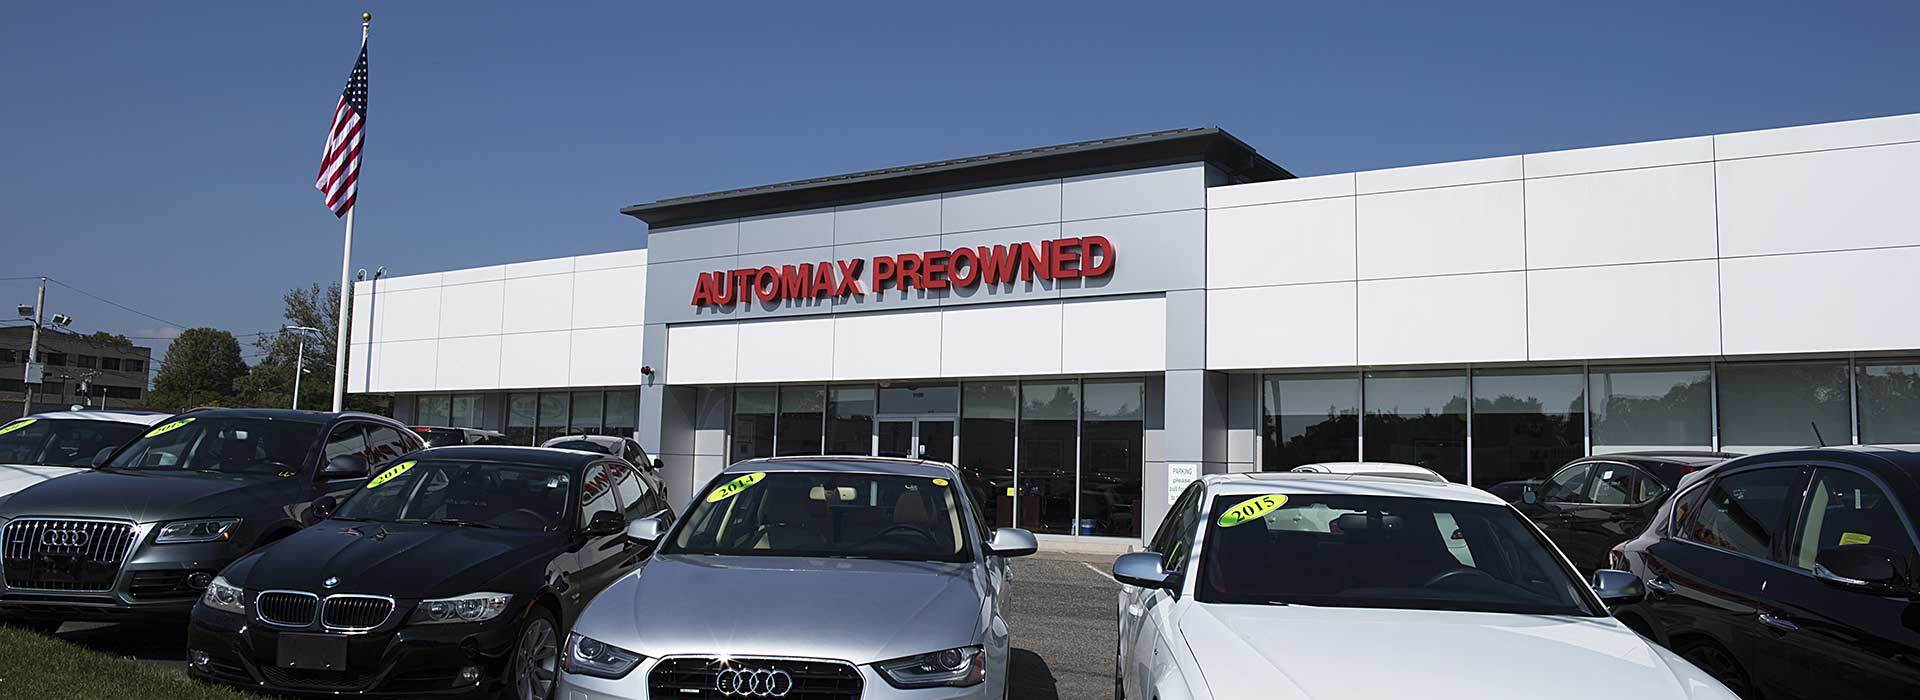 Welcome to AutoMax Preowned